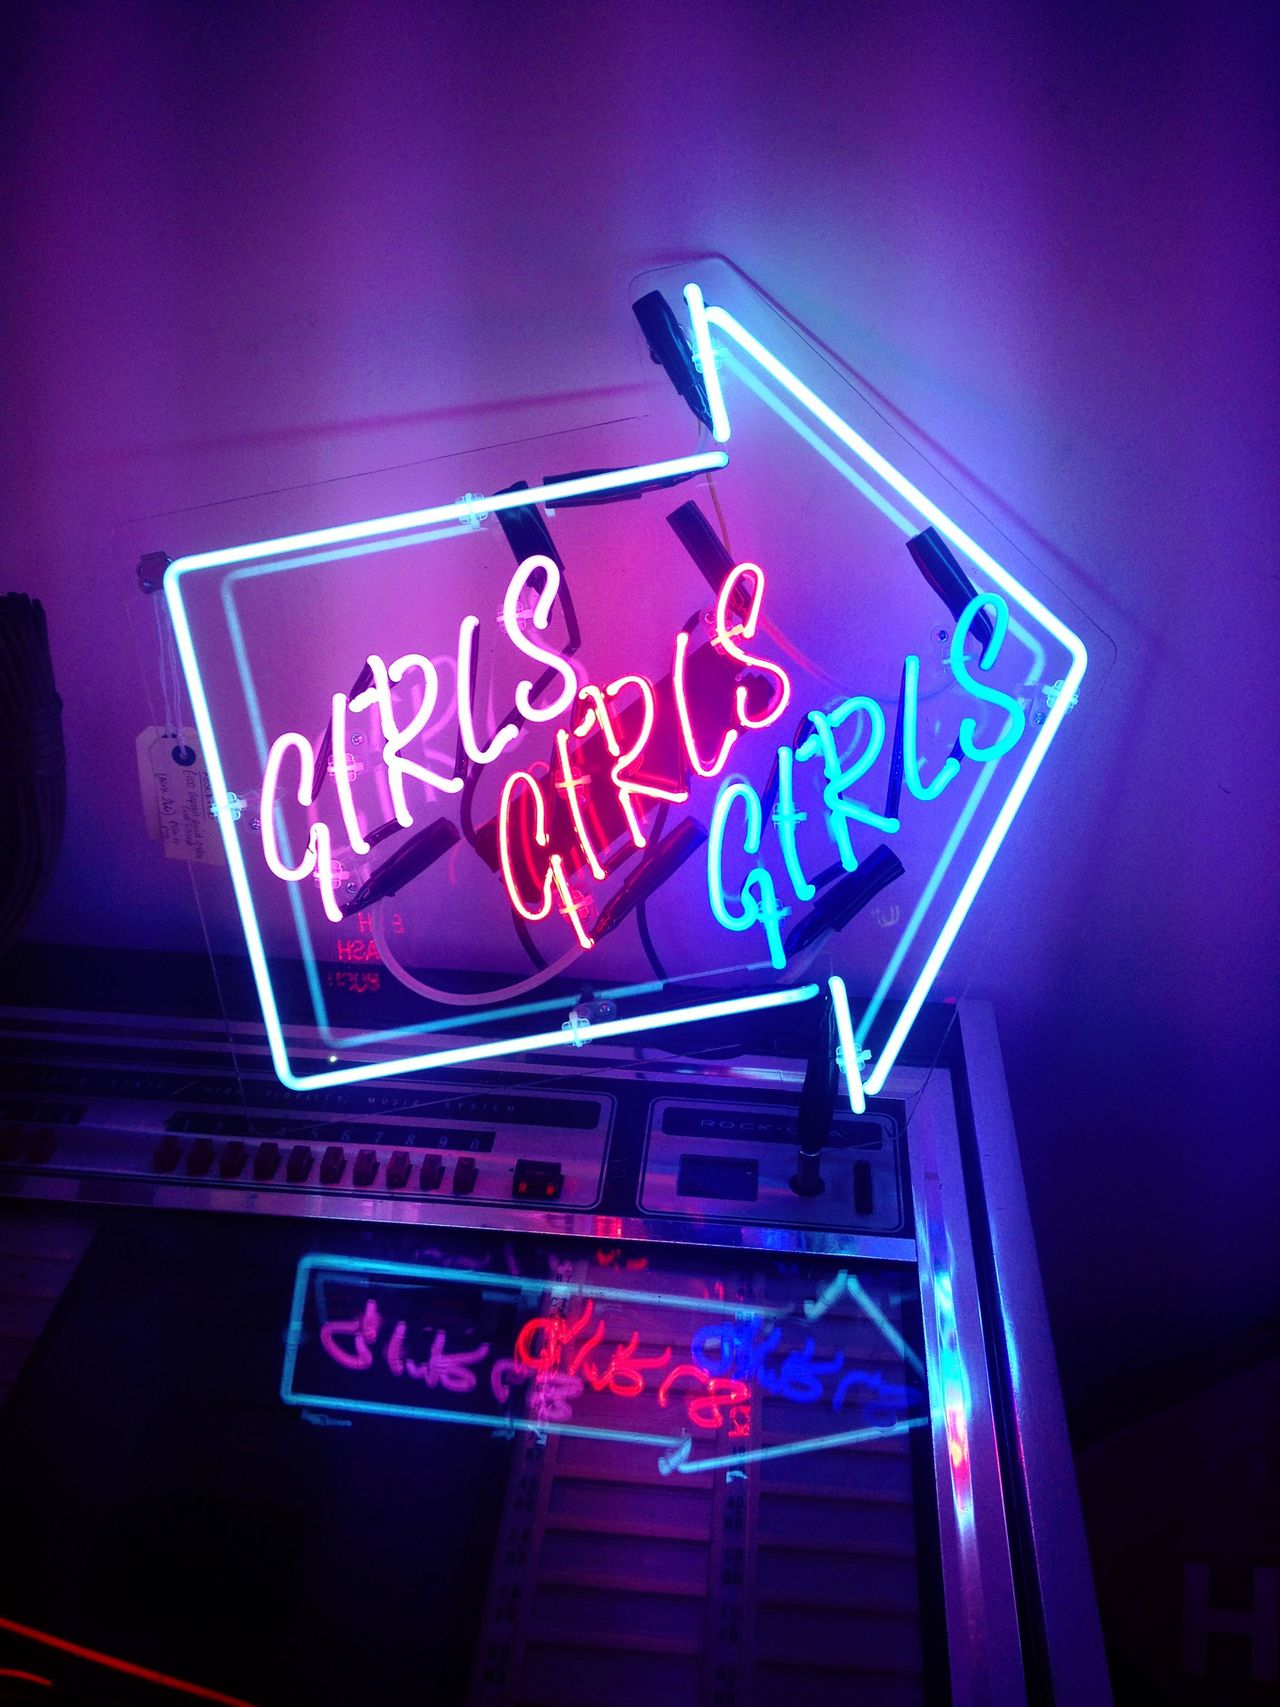 dirty pretty things pink glitter pinterest neon girls girls girls and neon lighting. Black Bedroom Furniture Sets. Home Design Ideas